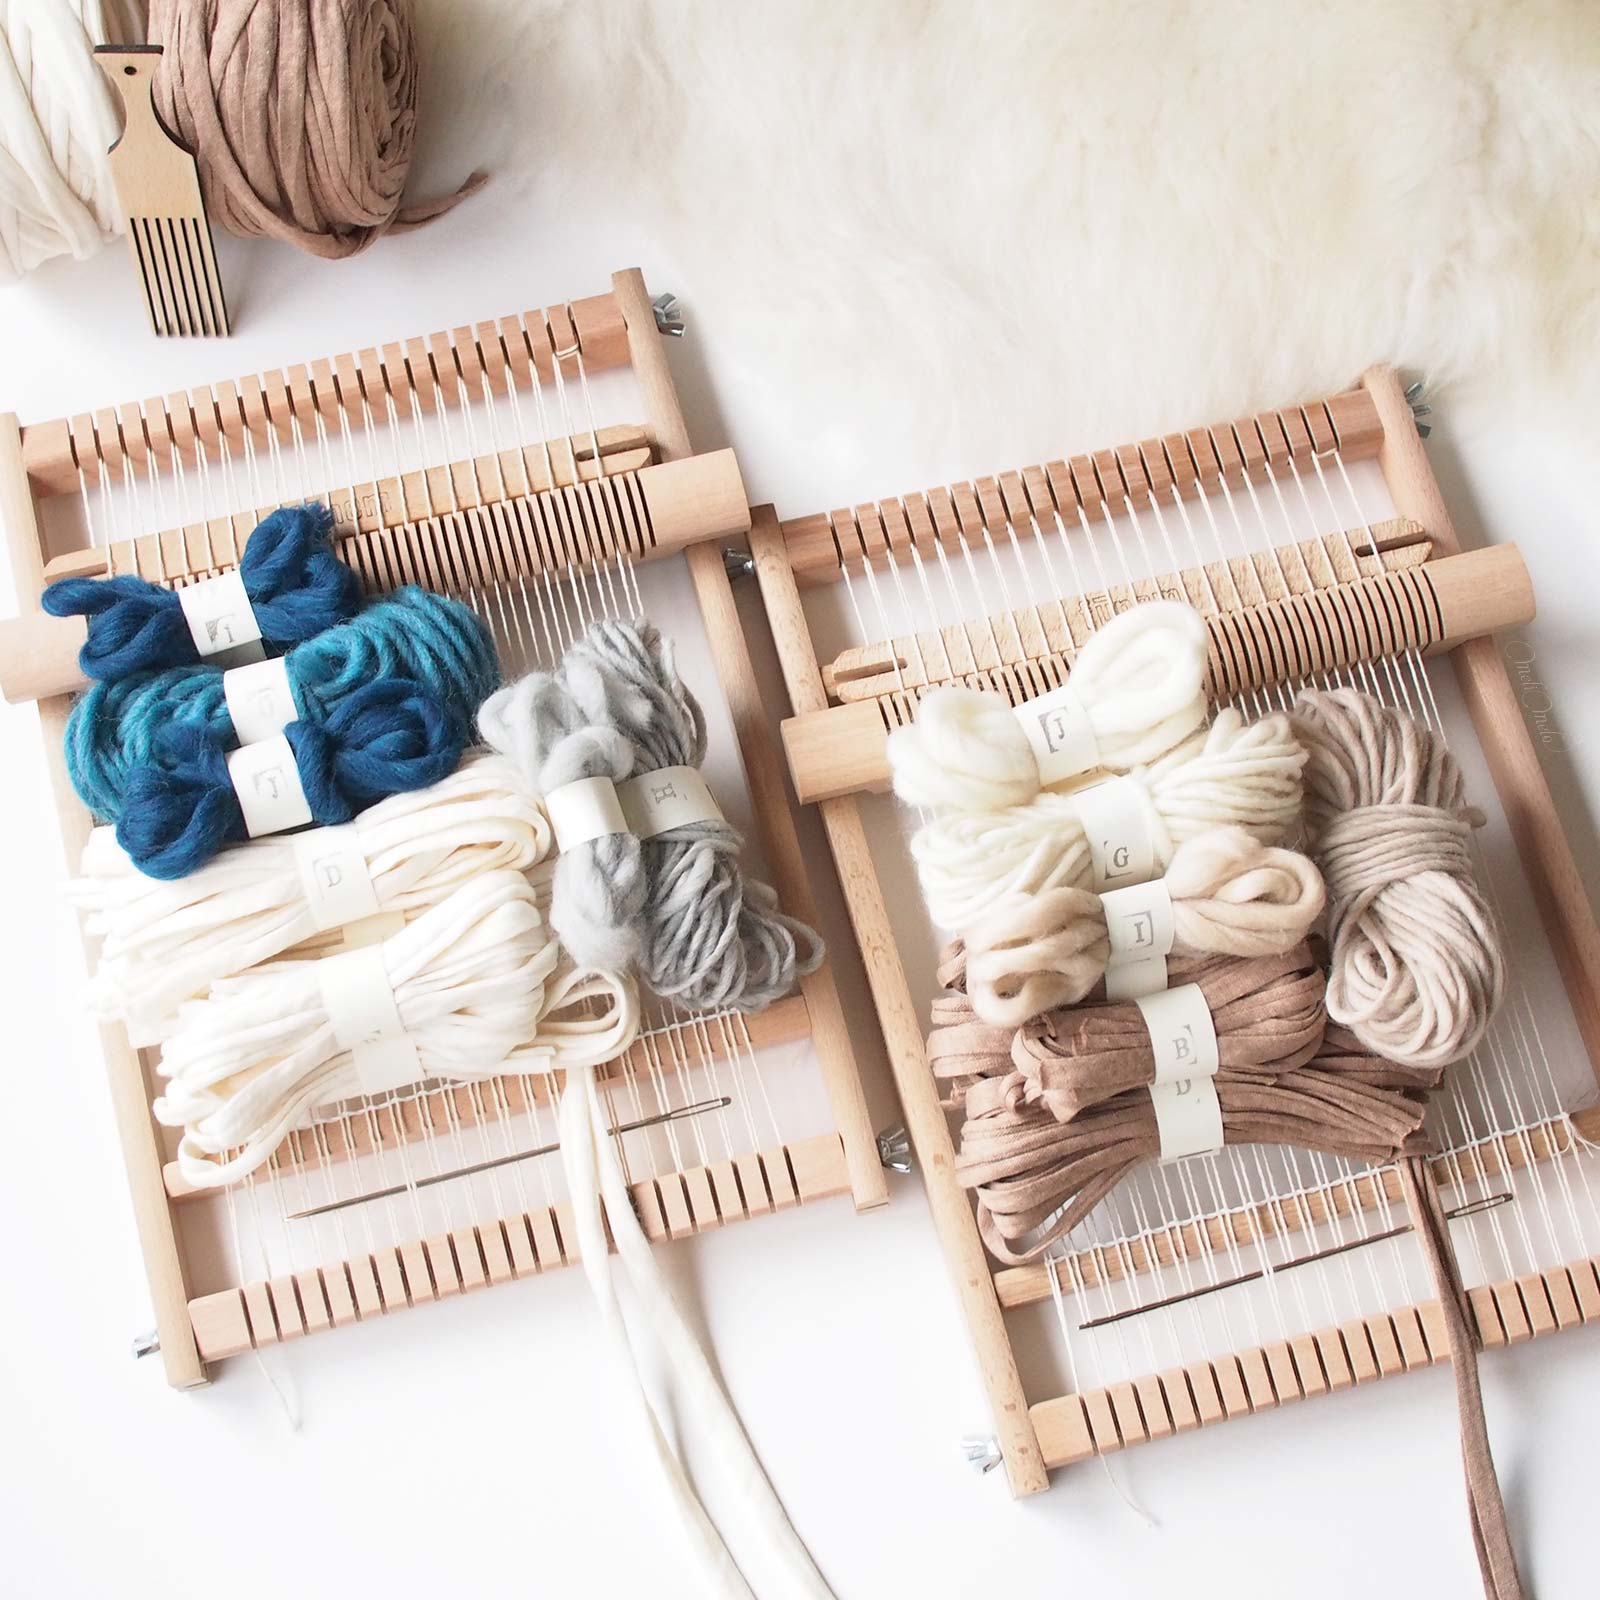 kit de tissage DIY couleurs paysages woolandthegang weareknitters funemstudio laboutiquedemelimelo